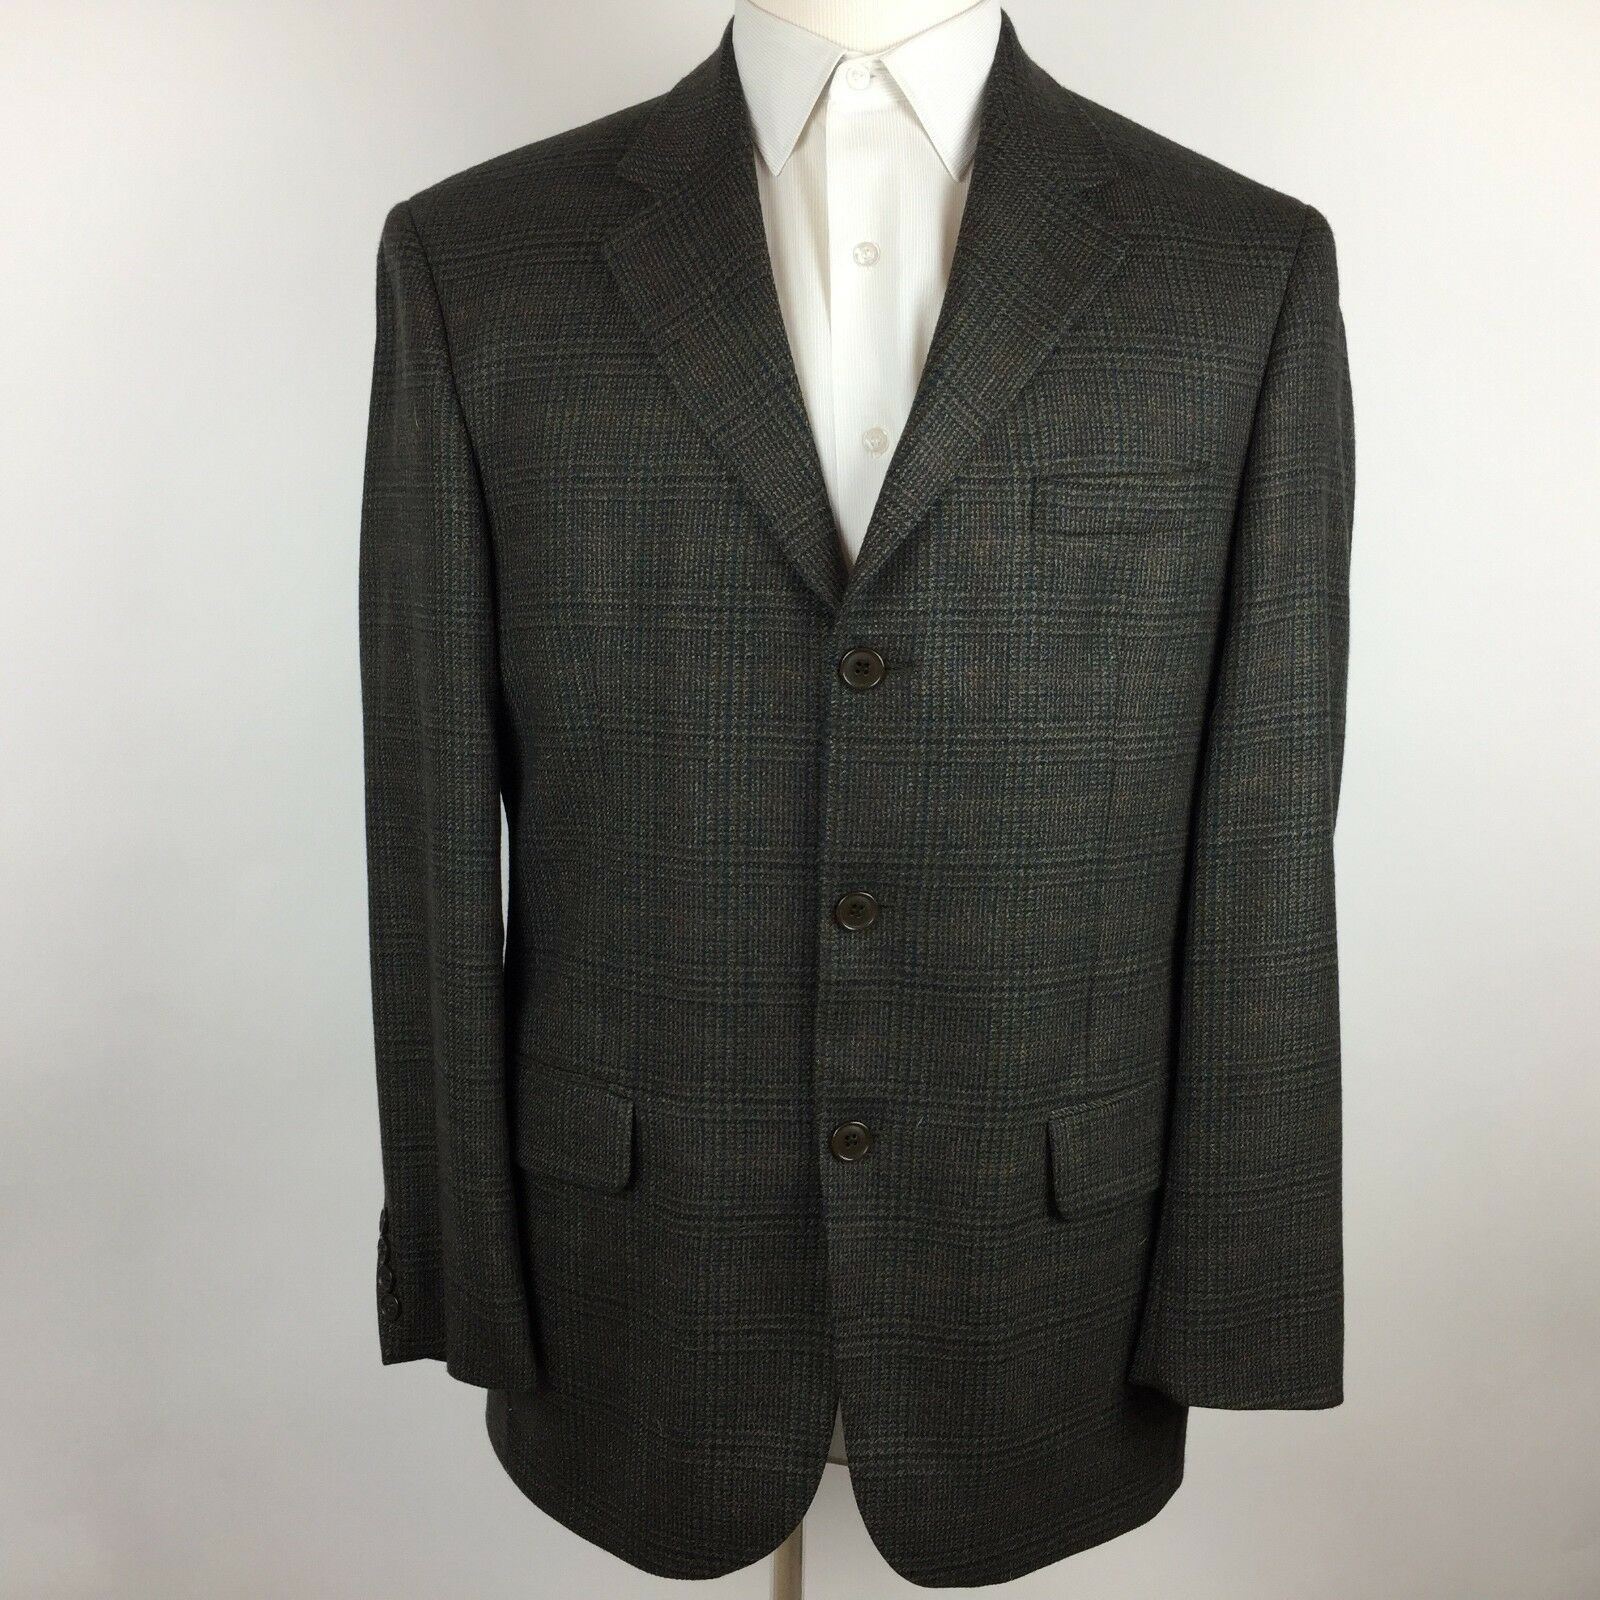 Gianfranco Ruffini Mens Sport Coat 3 Button Brown Glen Plaid 100% Lambswool 40R